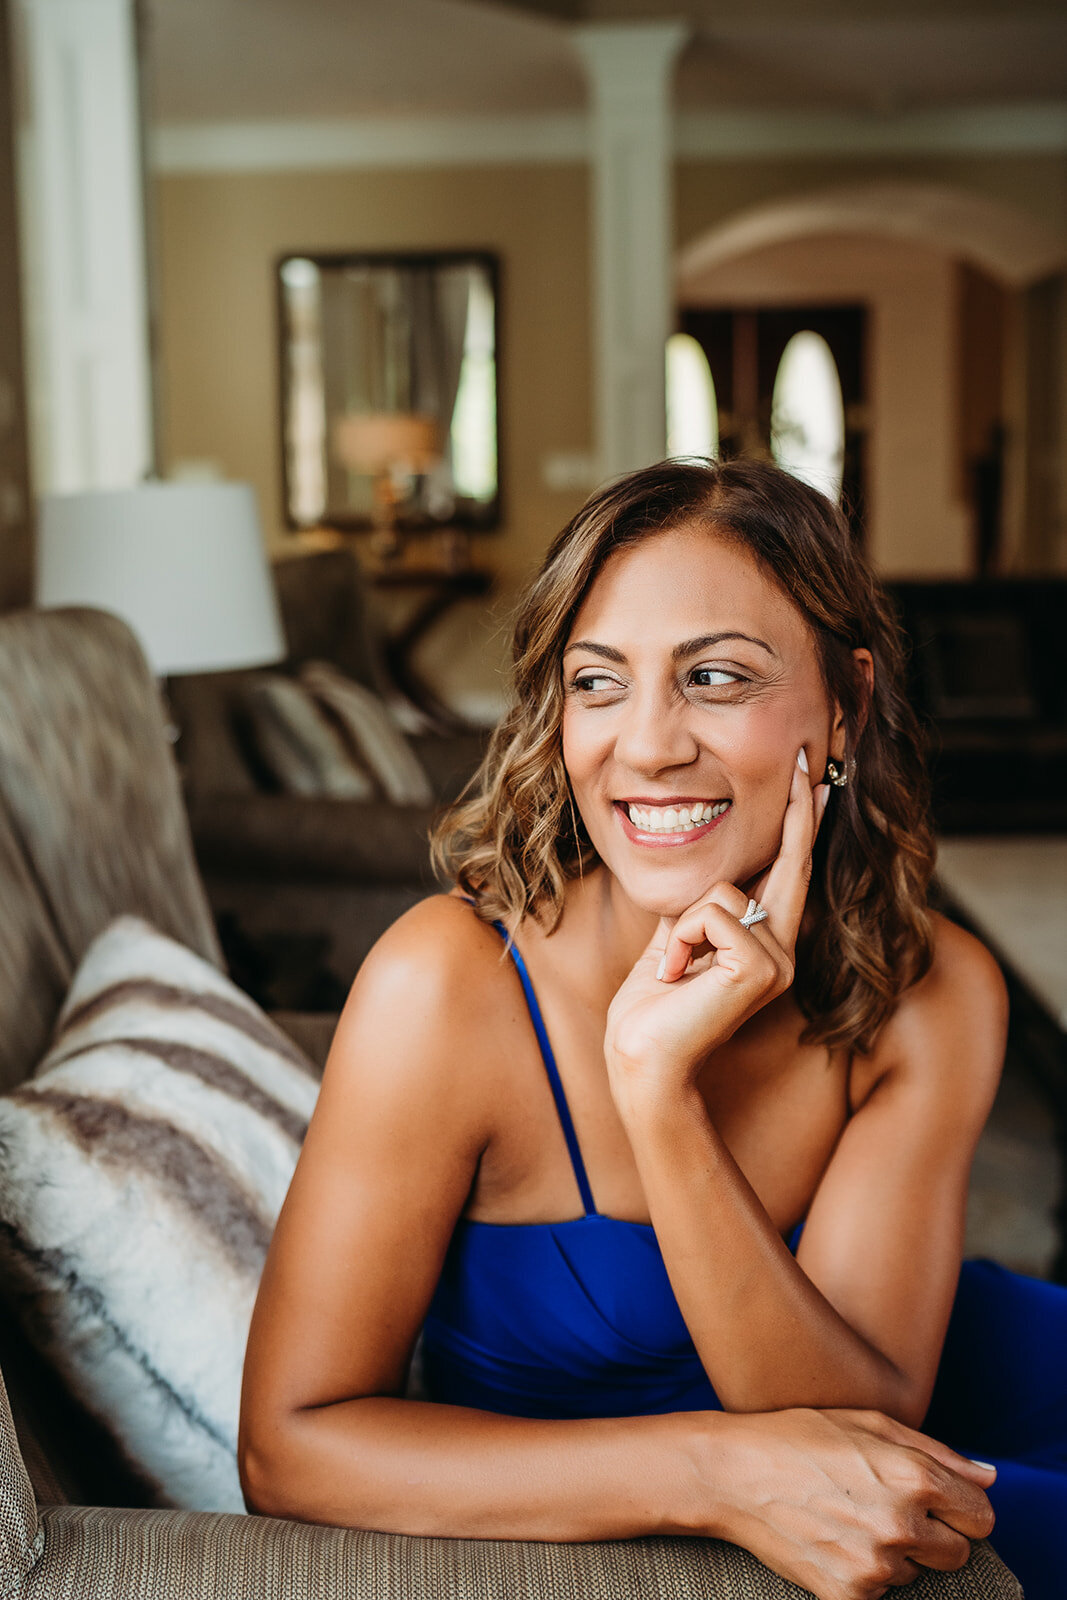 woman smiles while relaxing on a couch during brand photo session